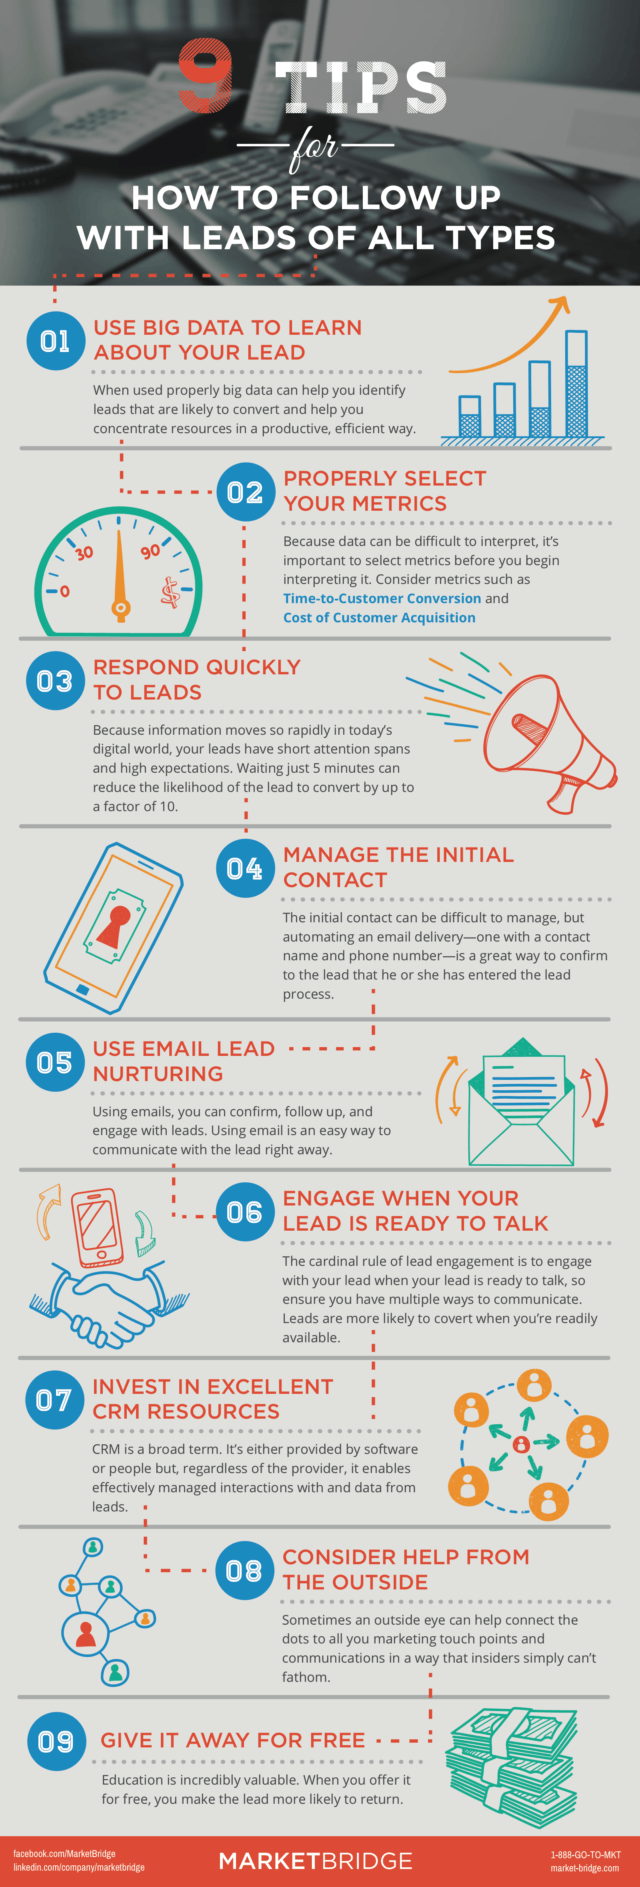 How to Follow Up on Leads